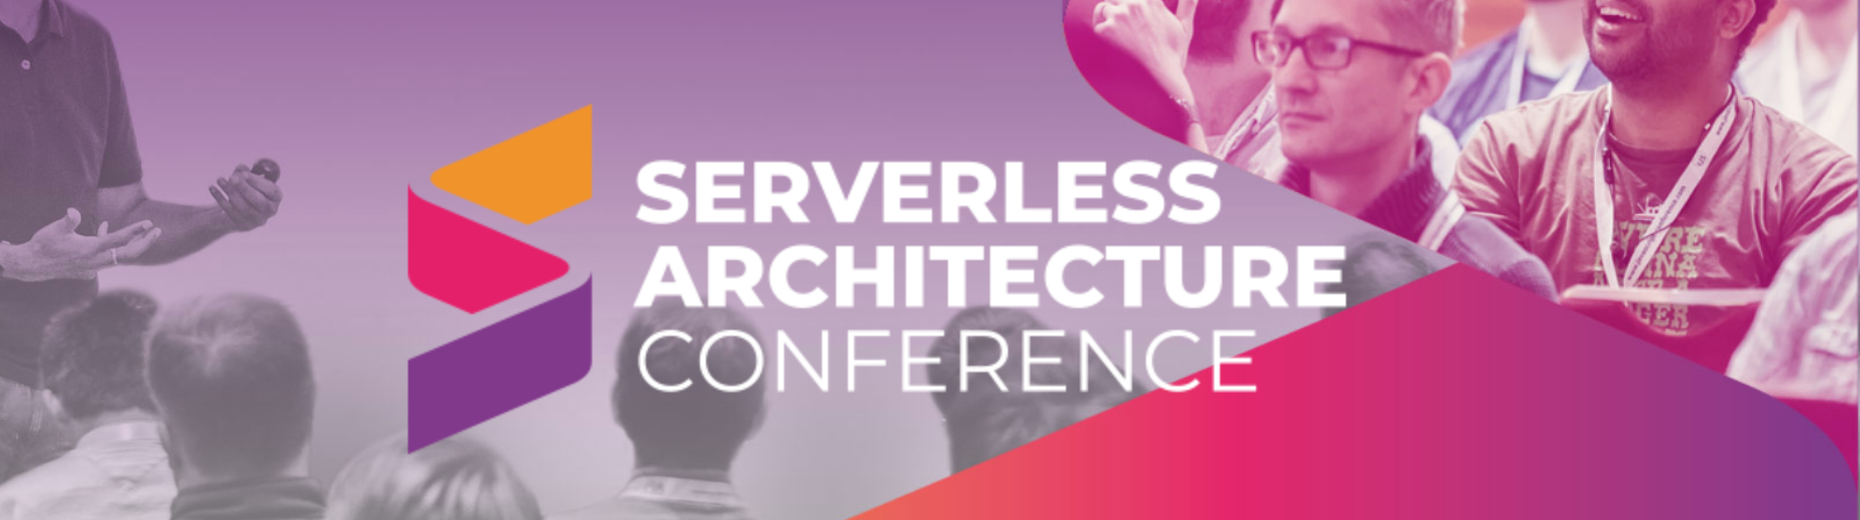 Serverless Architecture Conference 2019 - Serverless Hits the Big Time in Berlin